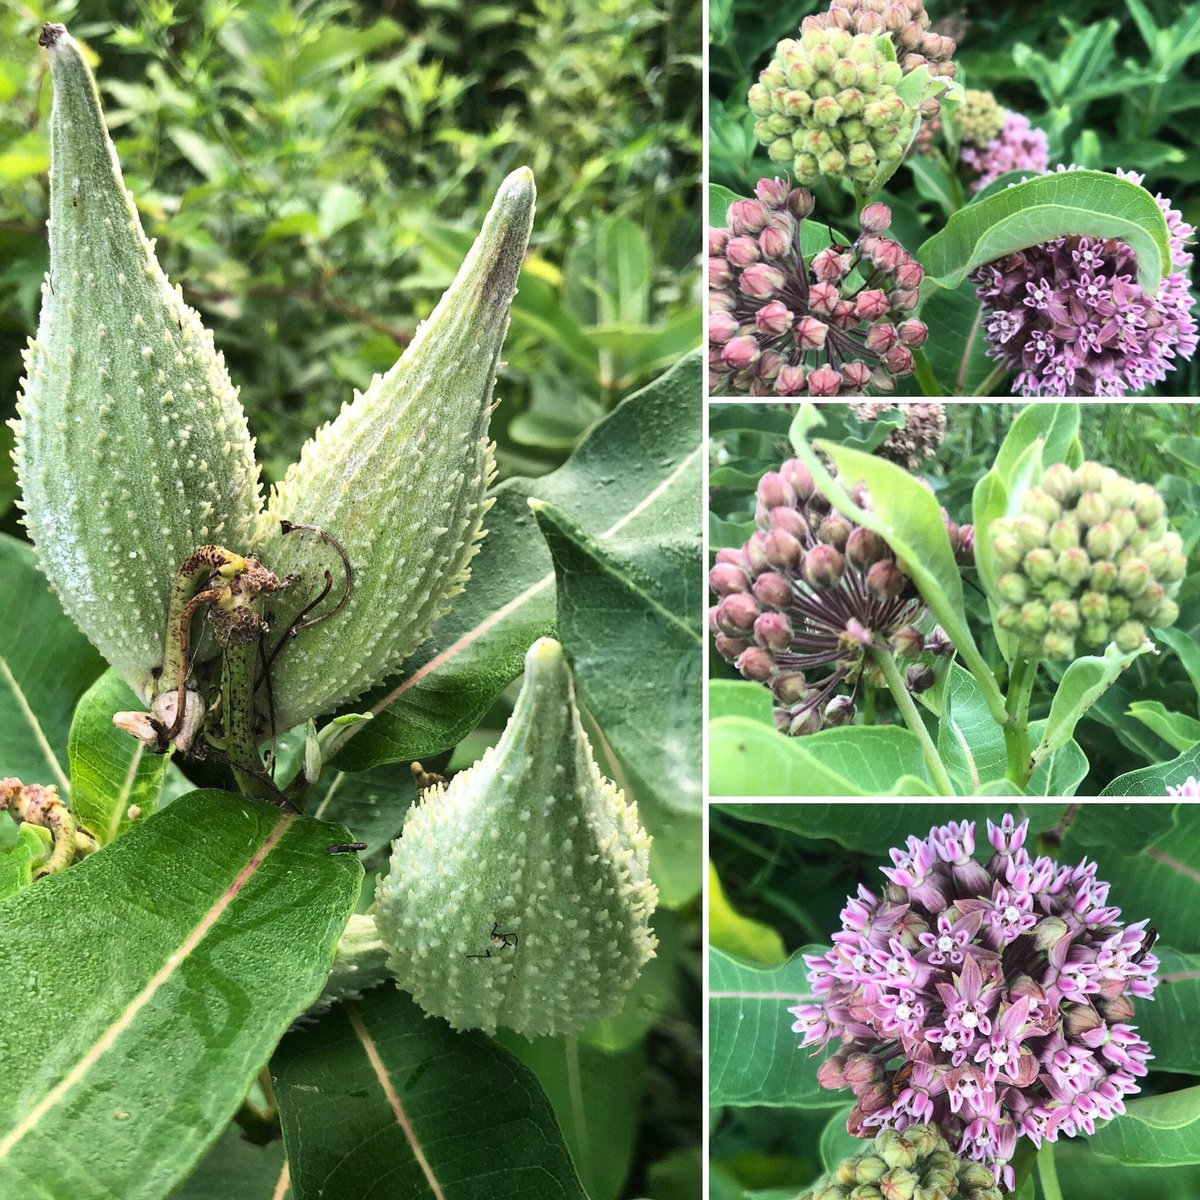 #etsy seed shop: Monarch Butterfly #Milkweed Asclepias syriaca fragrant blooms attract pollinators https://t.co/bxjn9DqFgi https://t.co/76ANDUXenO